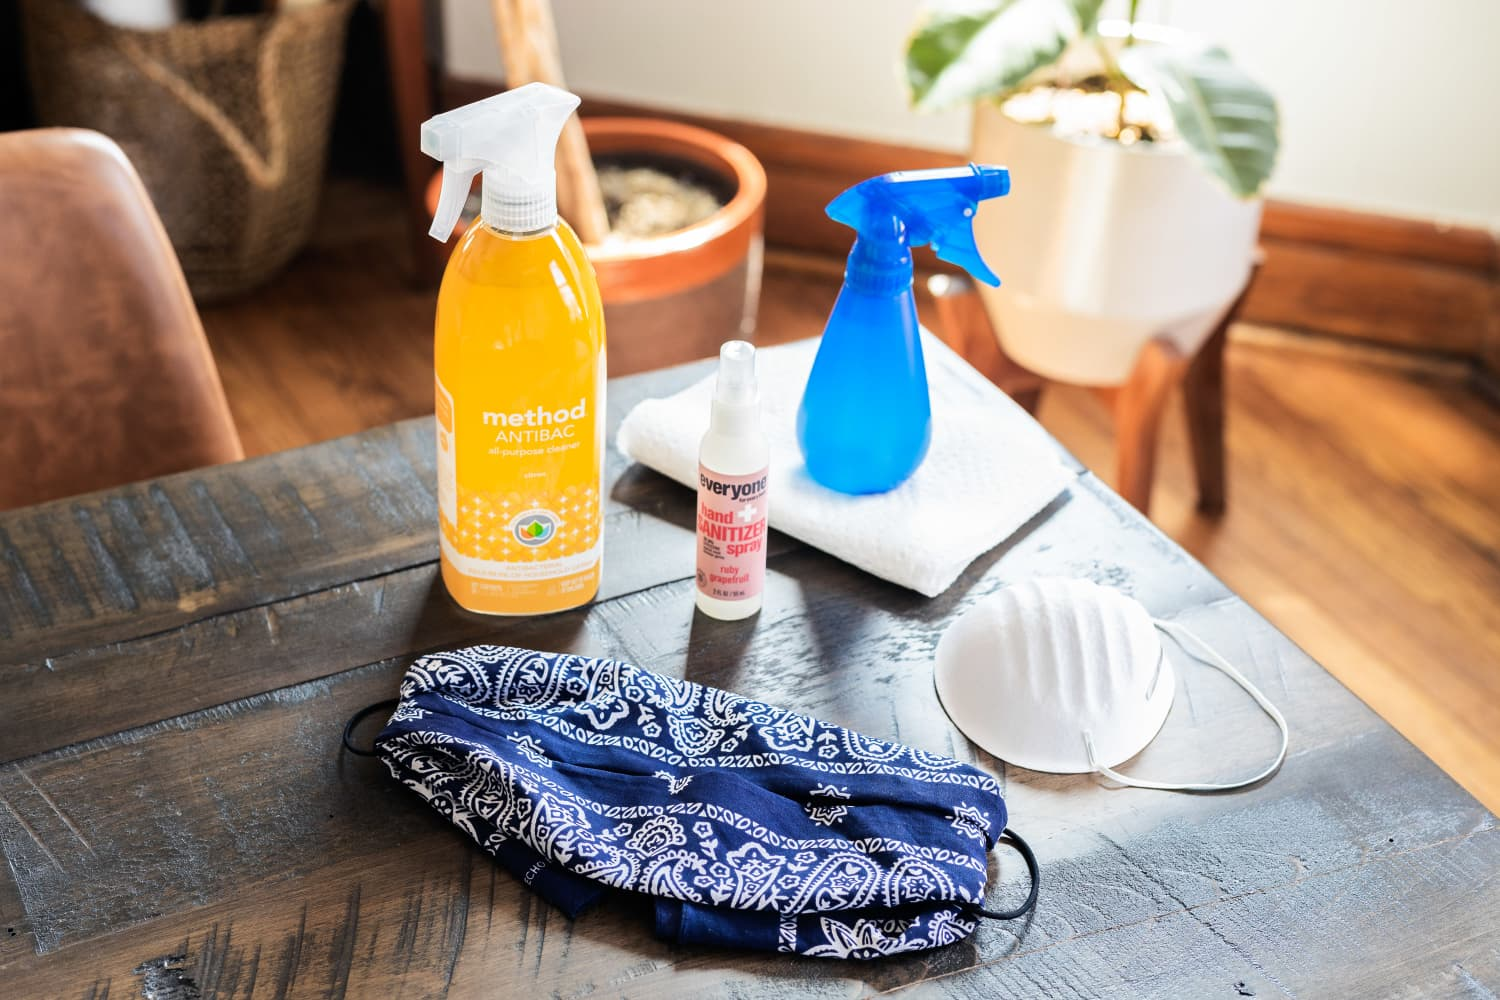 5 Disinfecting Steps You Should Still Be Taking (And 4 You Can Let Go), According to Experts